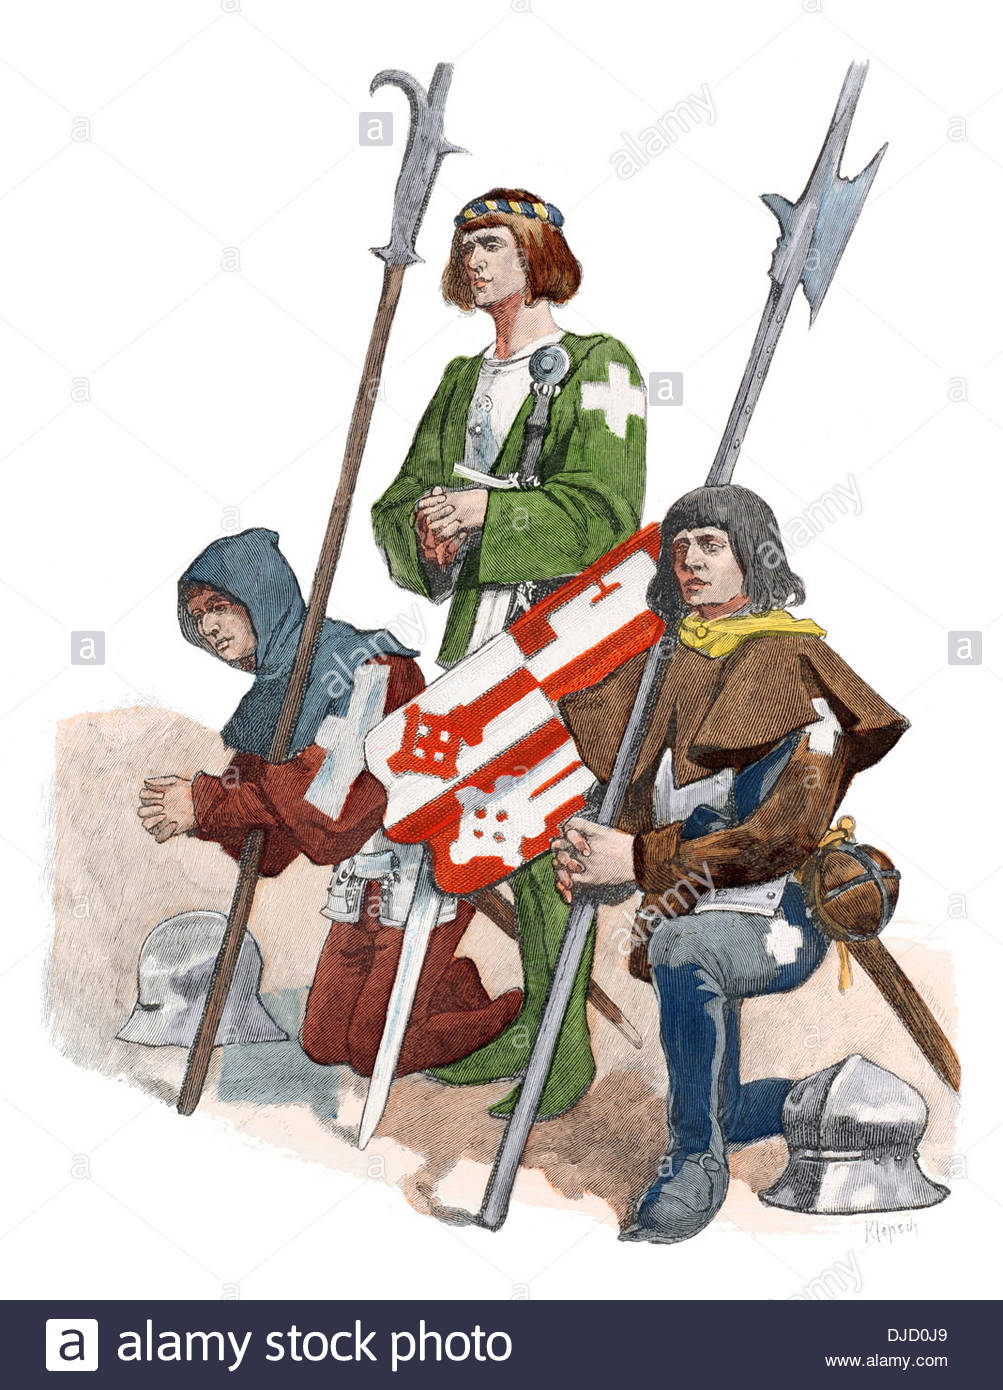 15th Century Xv 1400s Swiss Soldiers Stock Photo, Royalty Free.